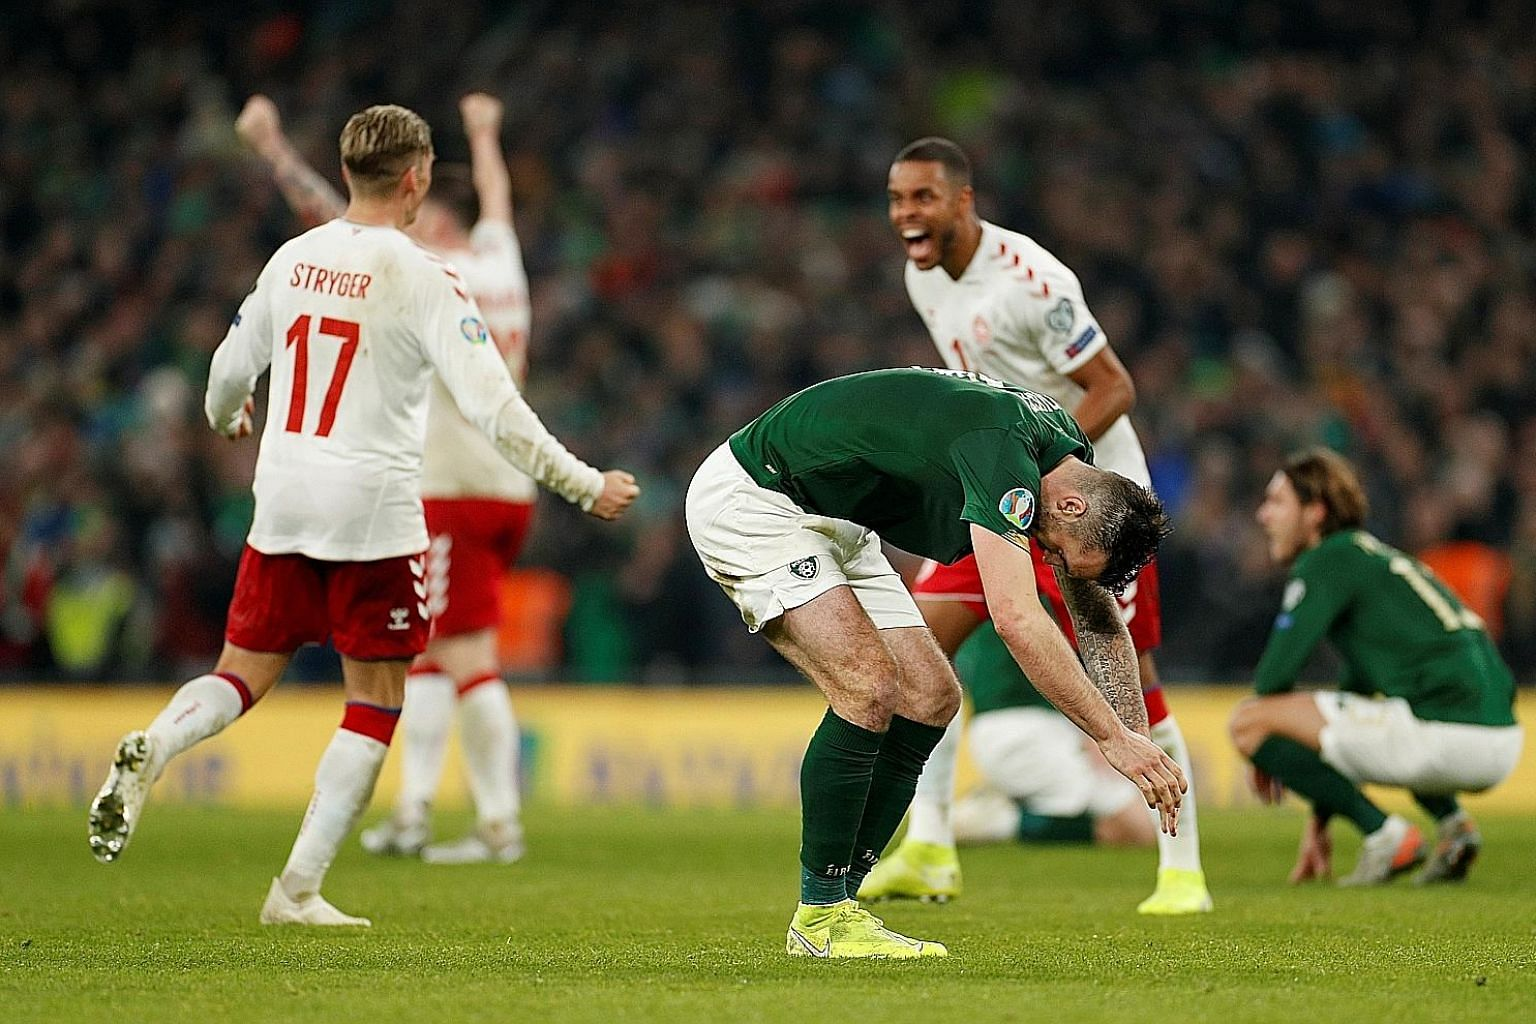 Irish defender Shane Duffy is crestfallen as Denmark's Jens Stryger Larsen and Mathias Jorgensen celebrate at the end of the match in Dublin. An own goal put the visitors ahead and although Matt Doherty equalised, Ireland will have to go through the